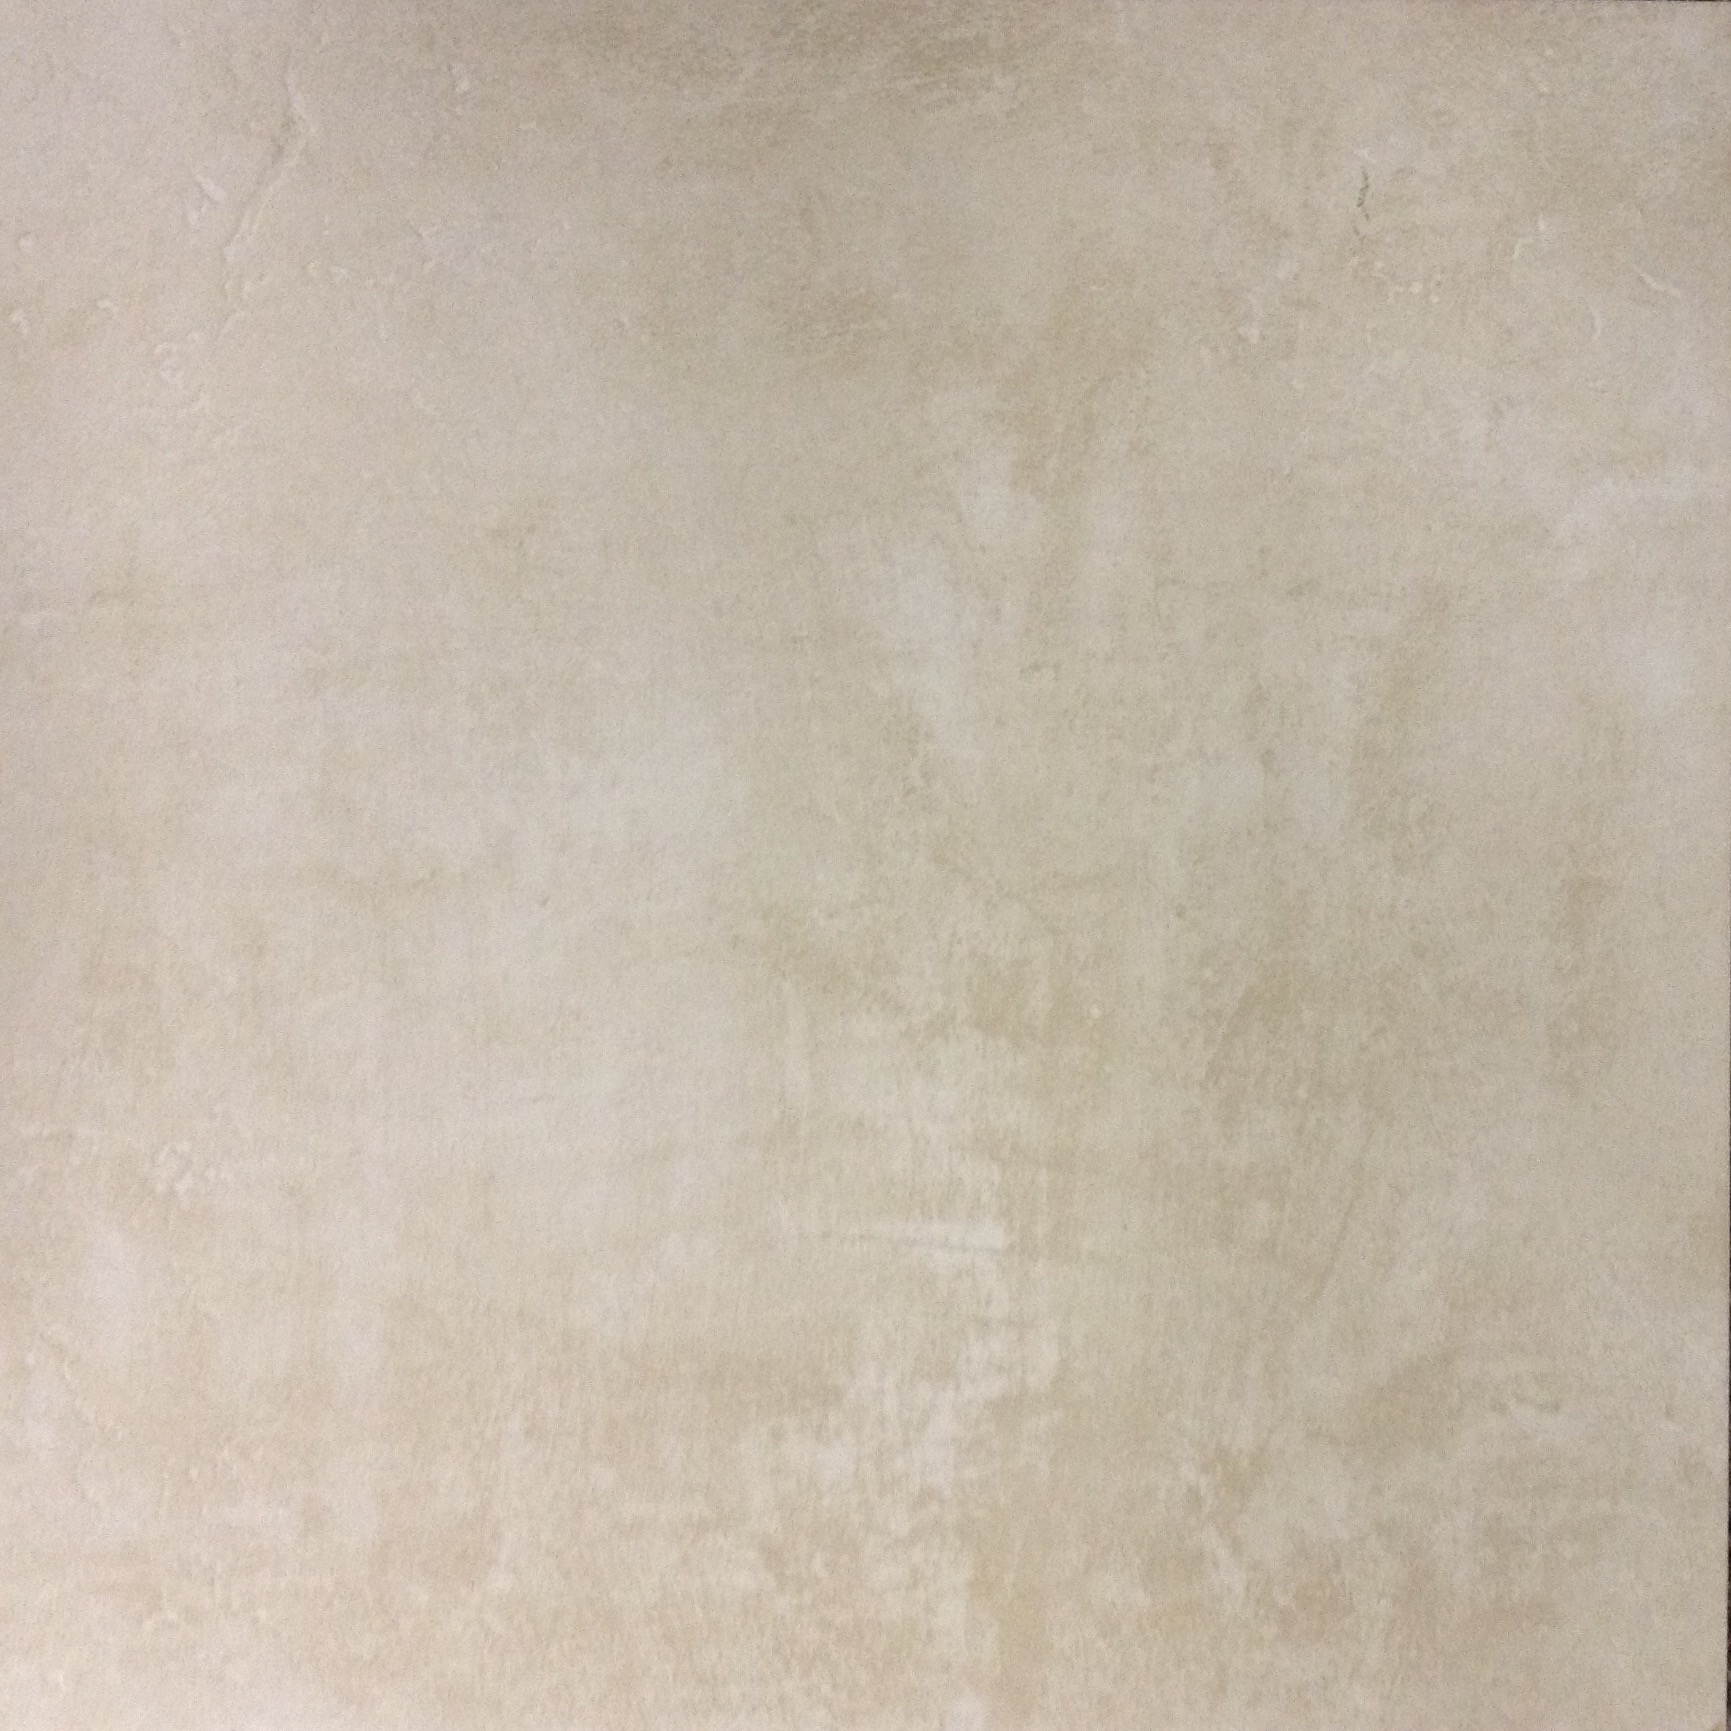 Parefeuille beton beige 43 43cm simac home design for Parefeuille carrelage